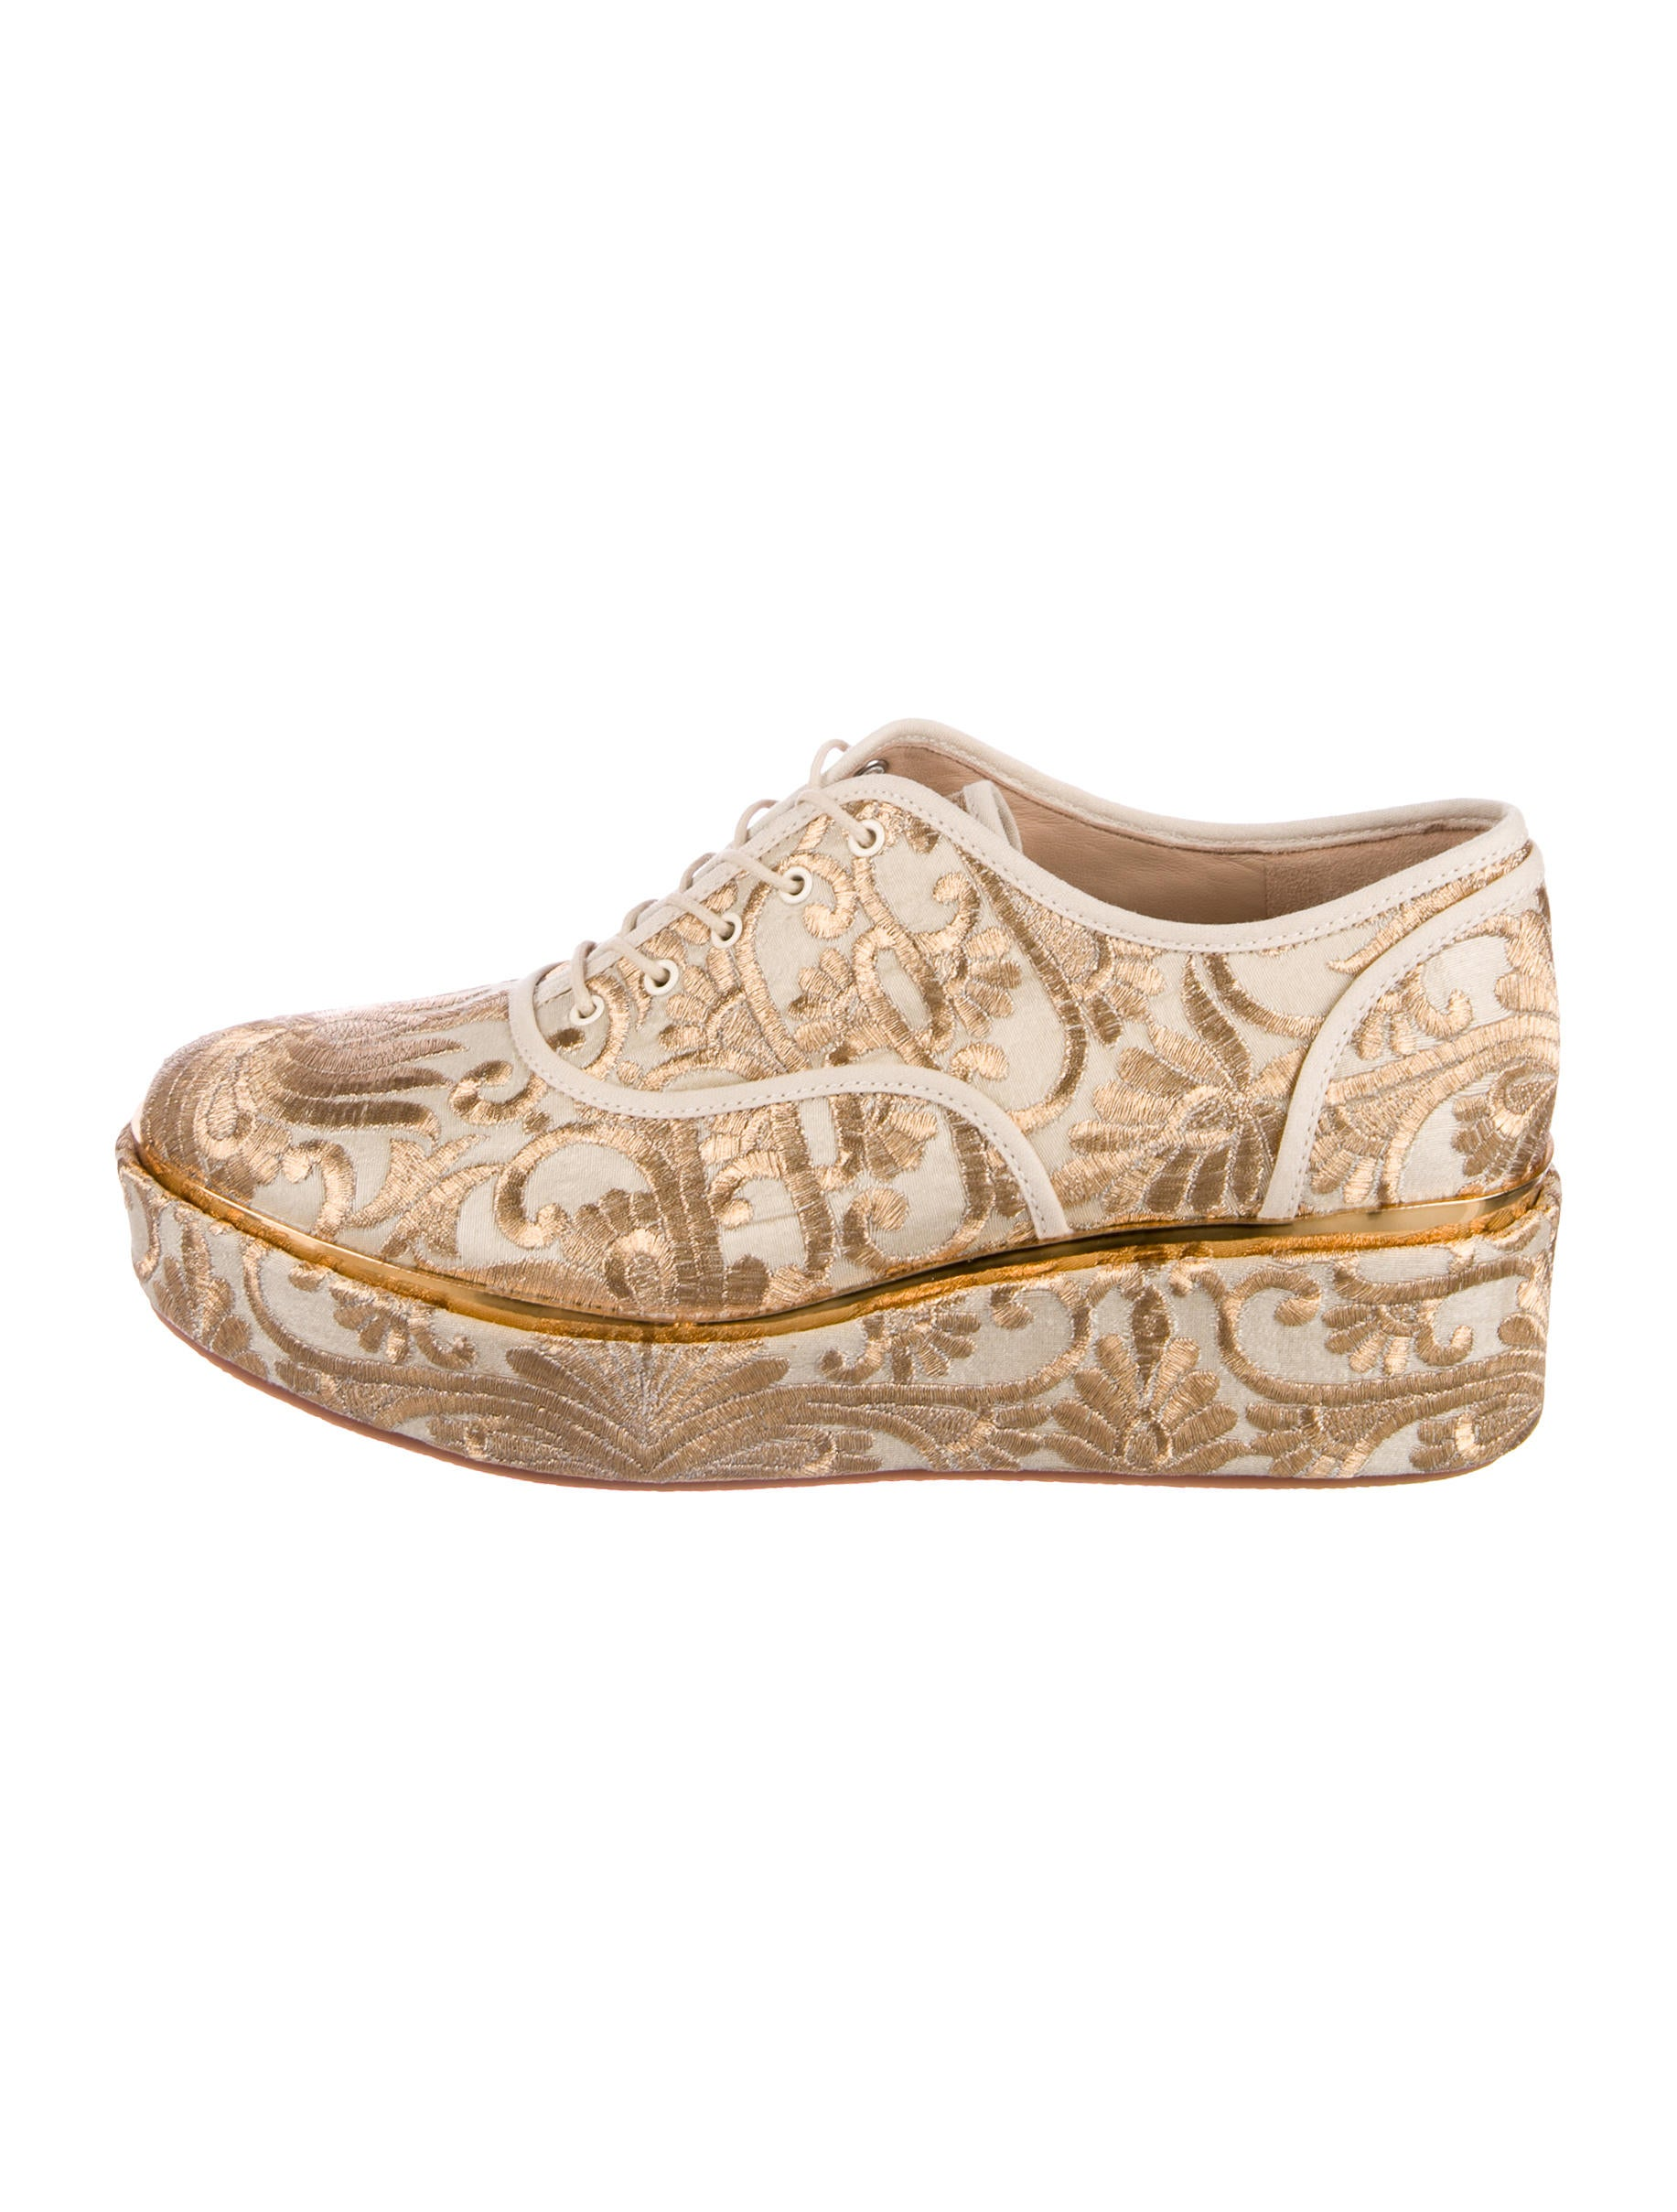 ed18b22660a Tory Burch Brocade Arden Platform Oxfords - Shoes - WTO124764